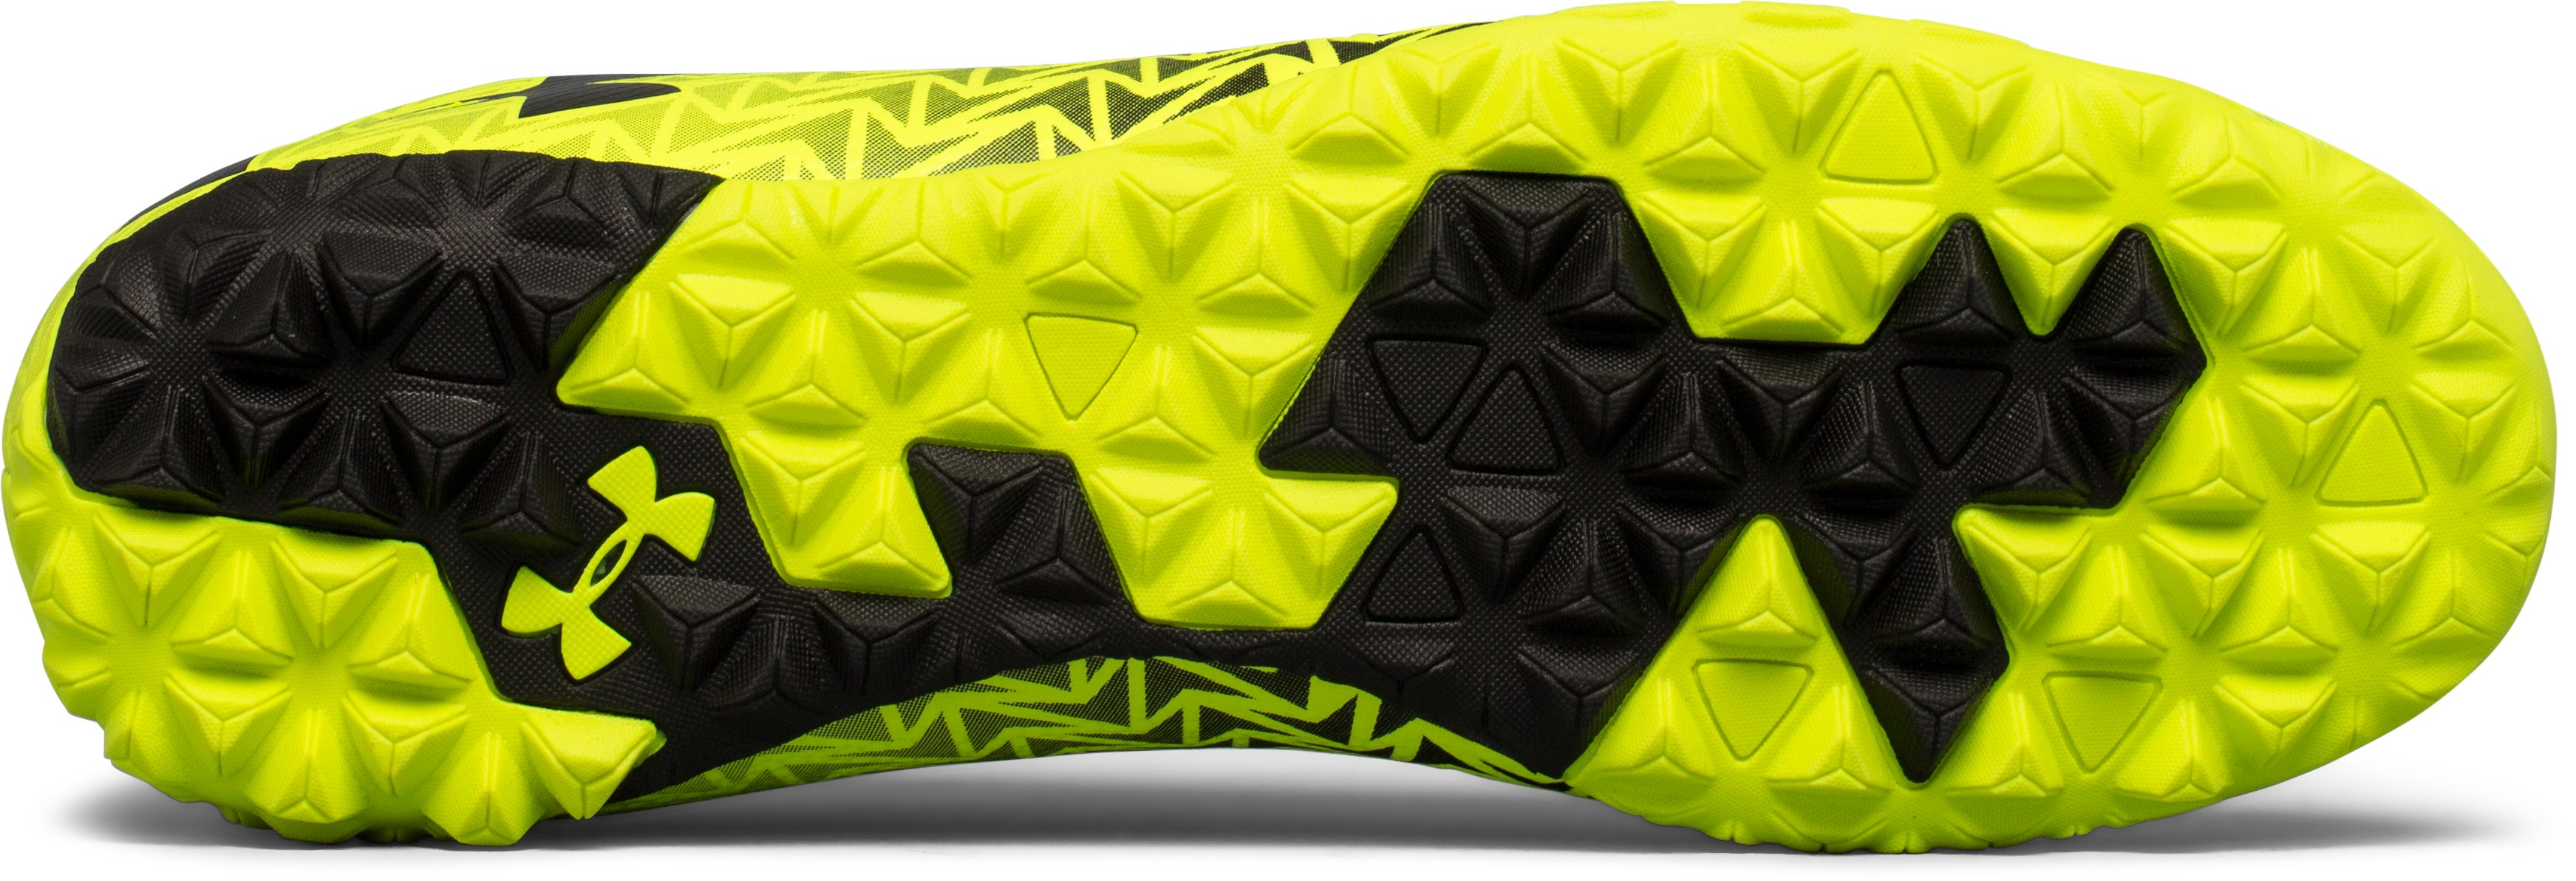 Men's UA CF Force 3.0 Turf Soccer Shoes, High-Vis Yellow,